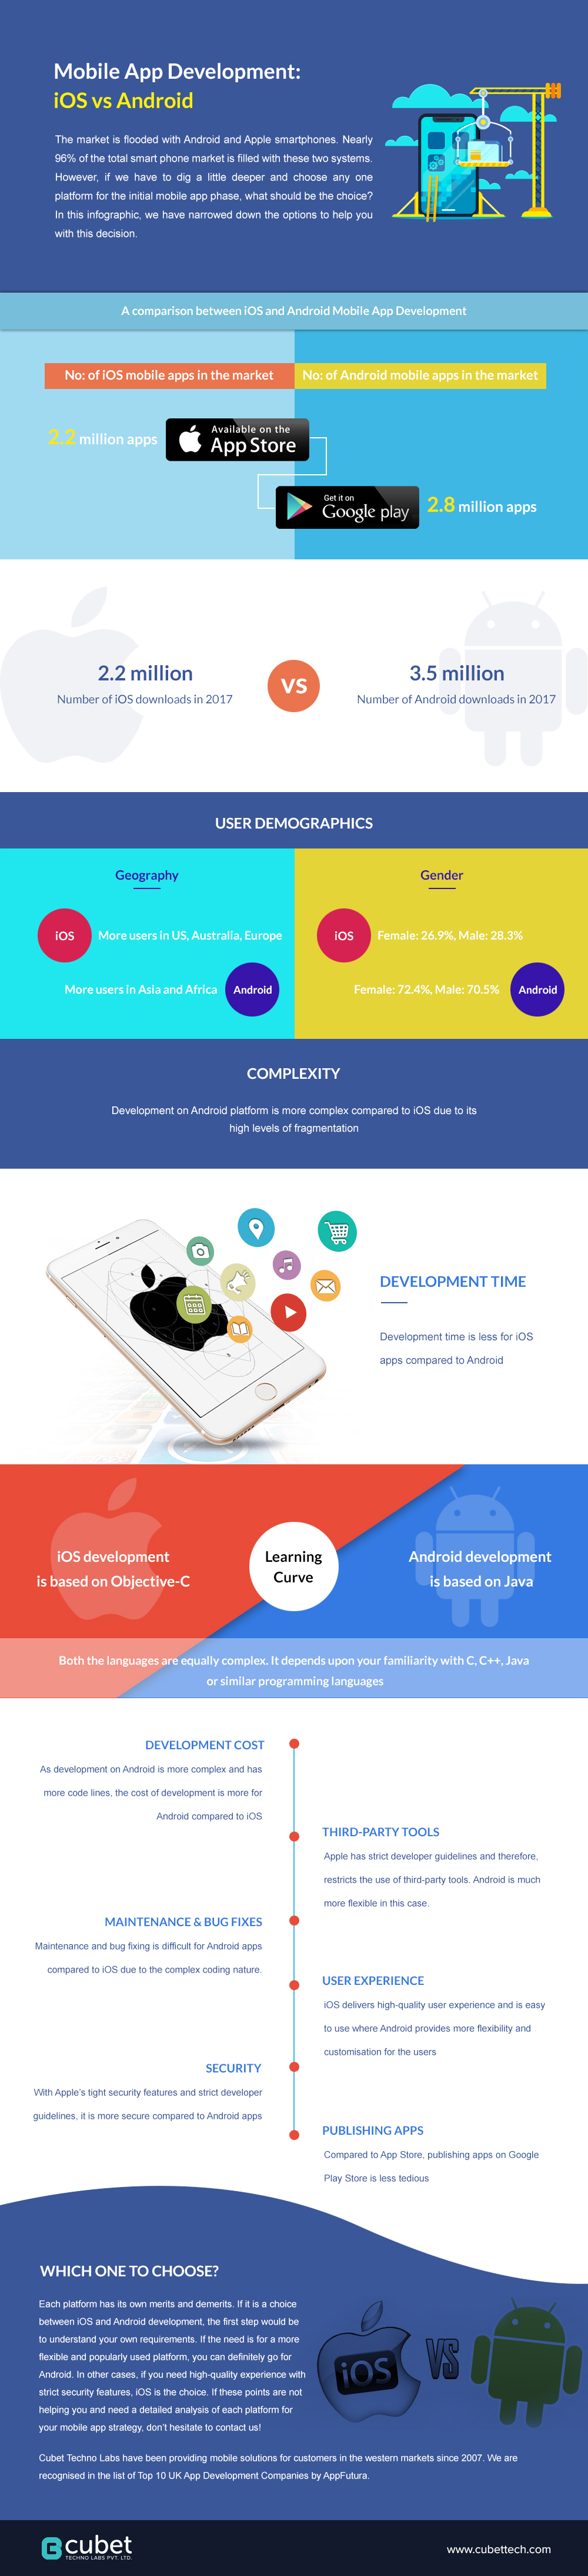 Mobile App Development: iOS vs Android - Cubet Techno Labs